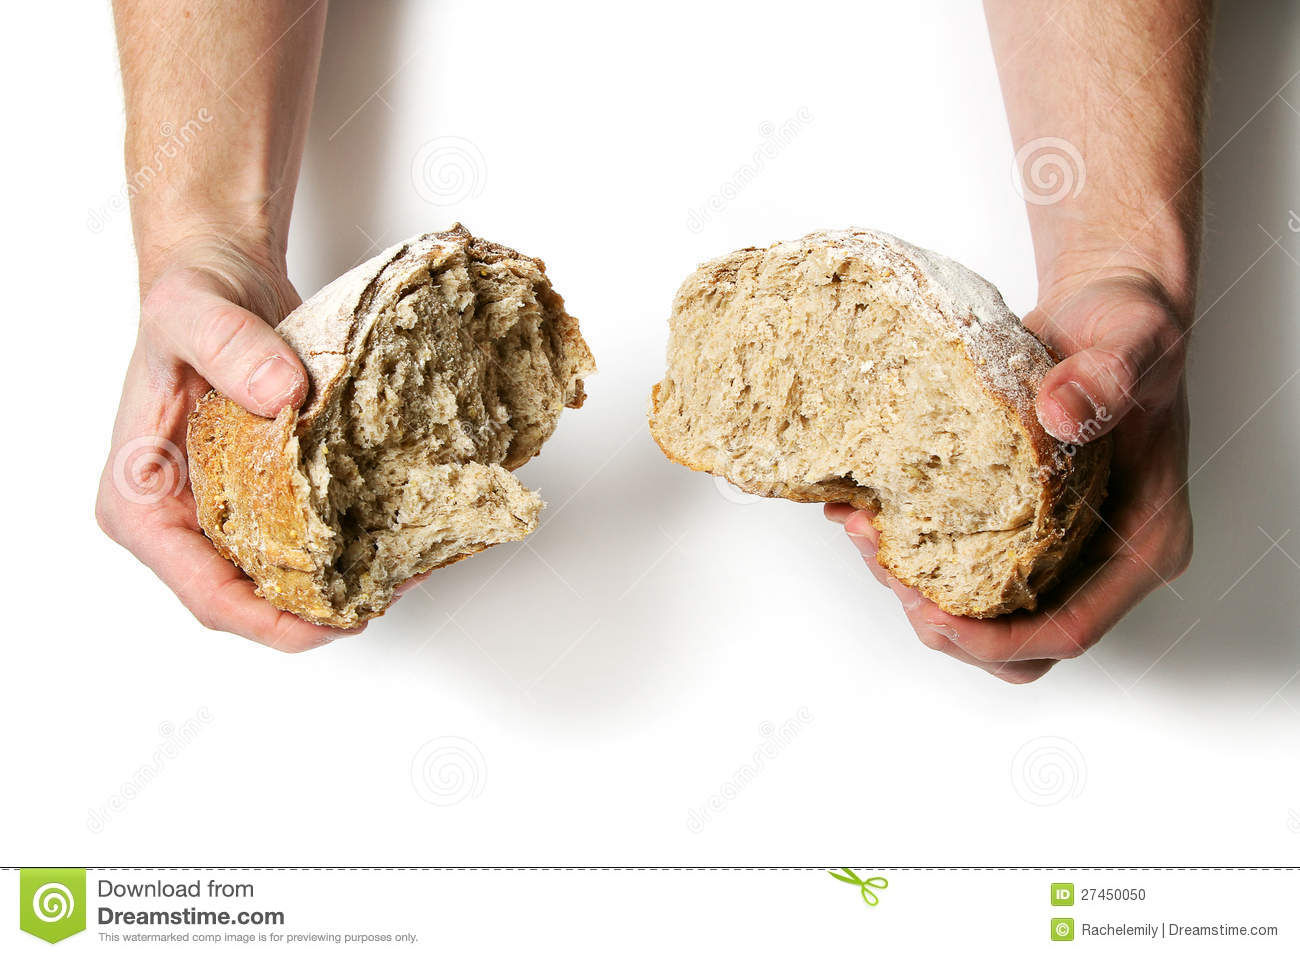 Breaking apart a fresh loaf of bread against a white background.